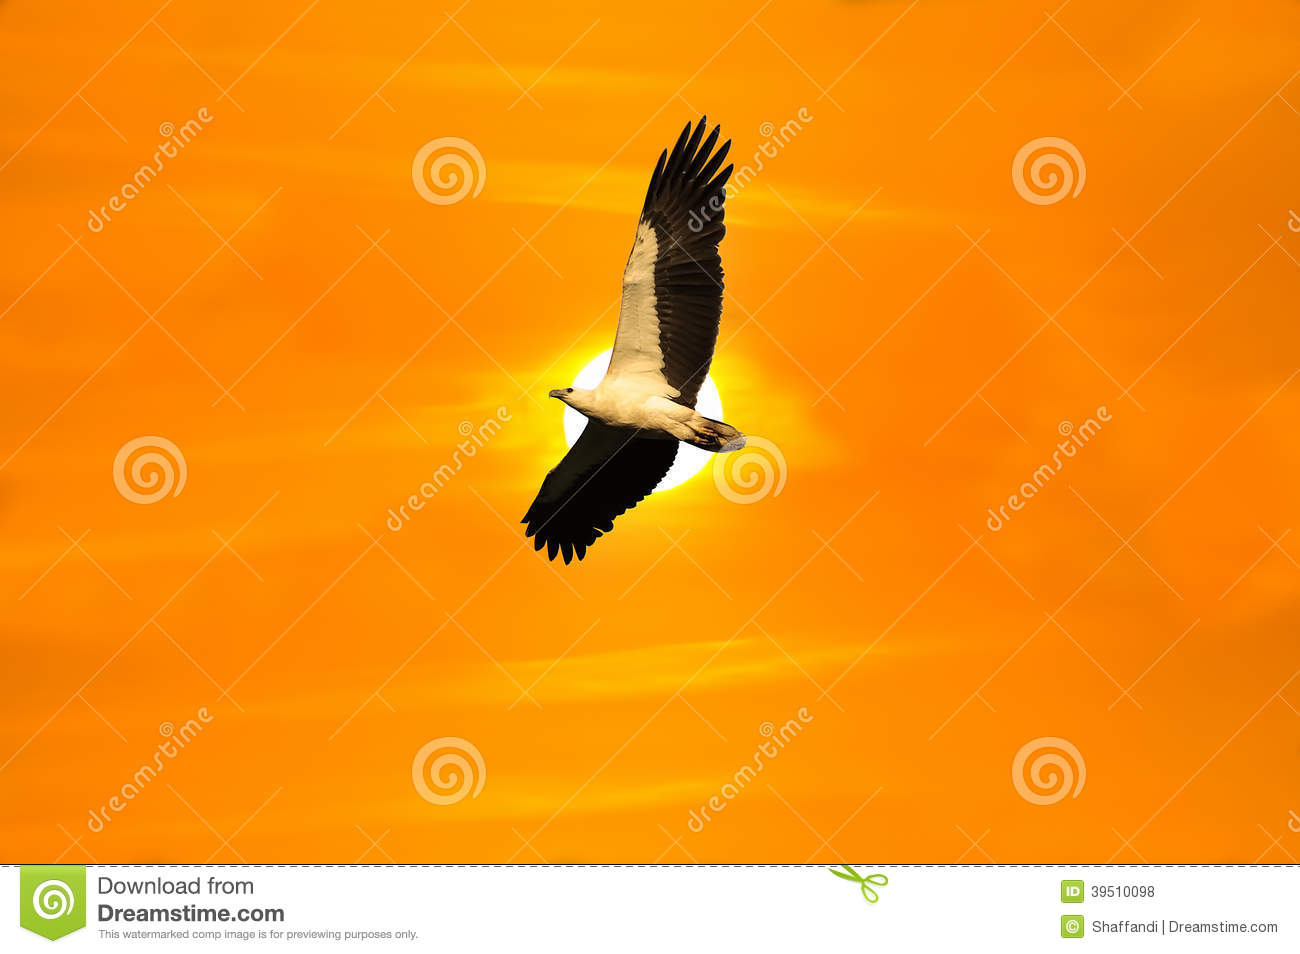 Eagle white bellied flying